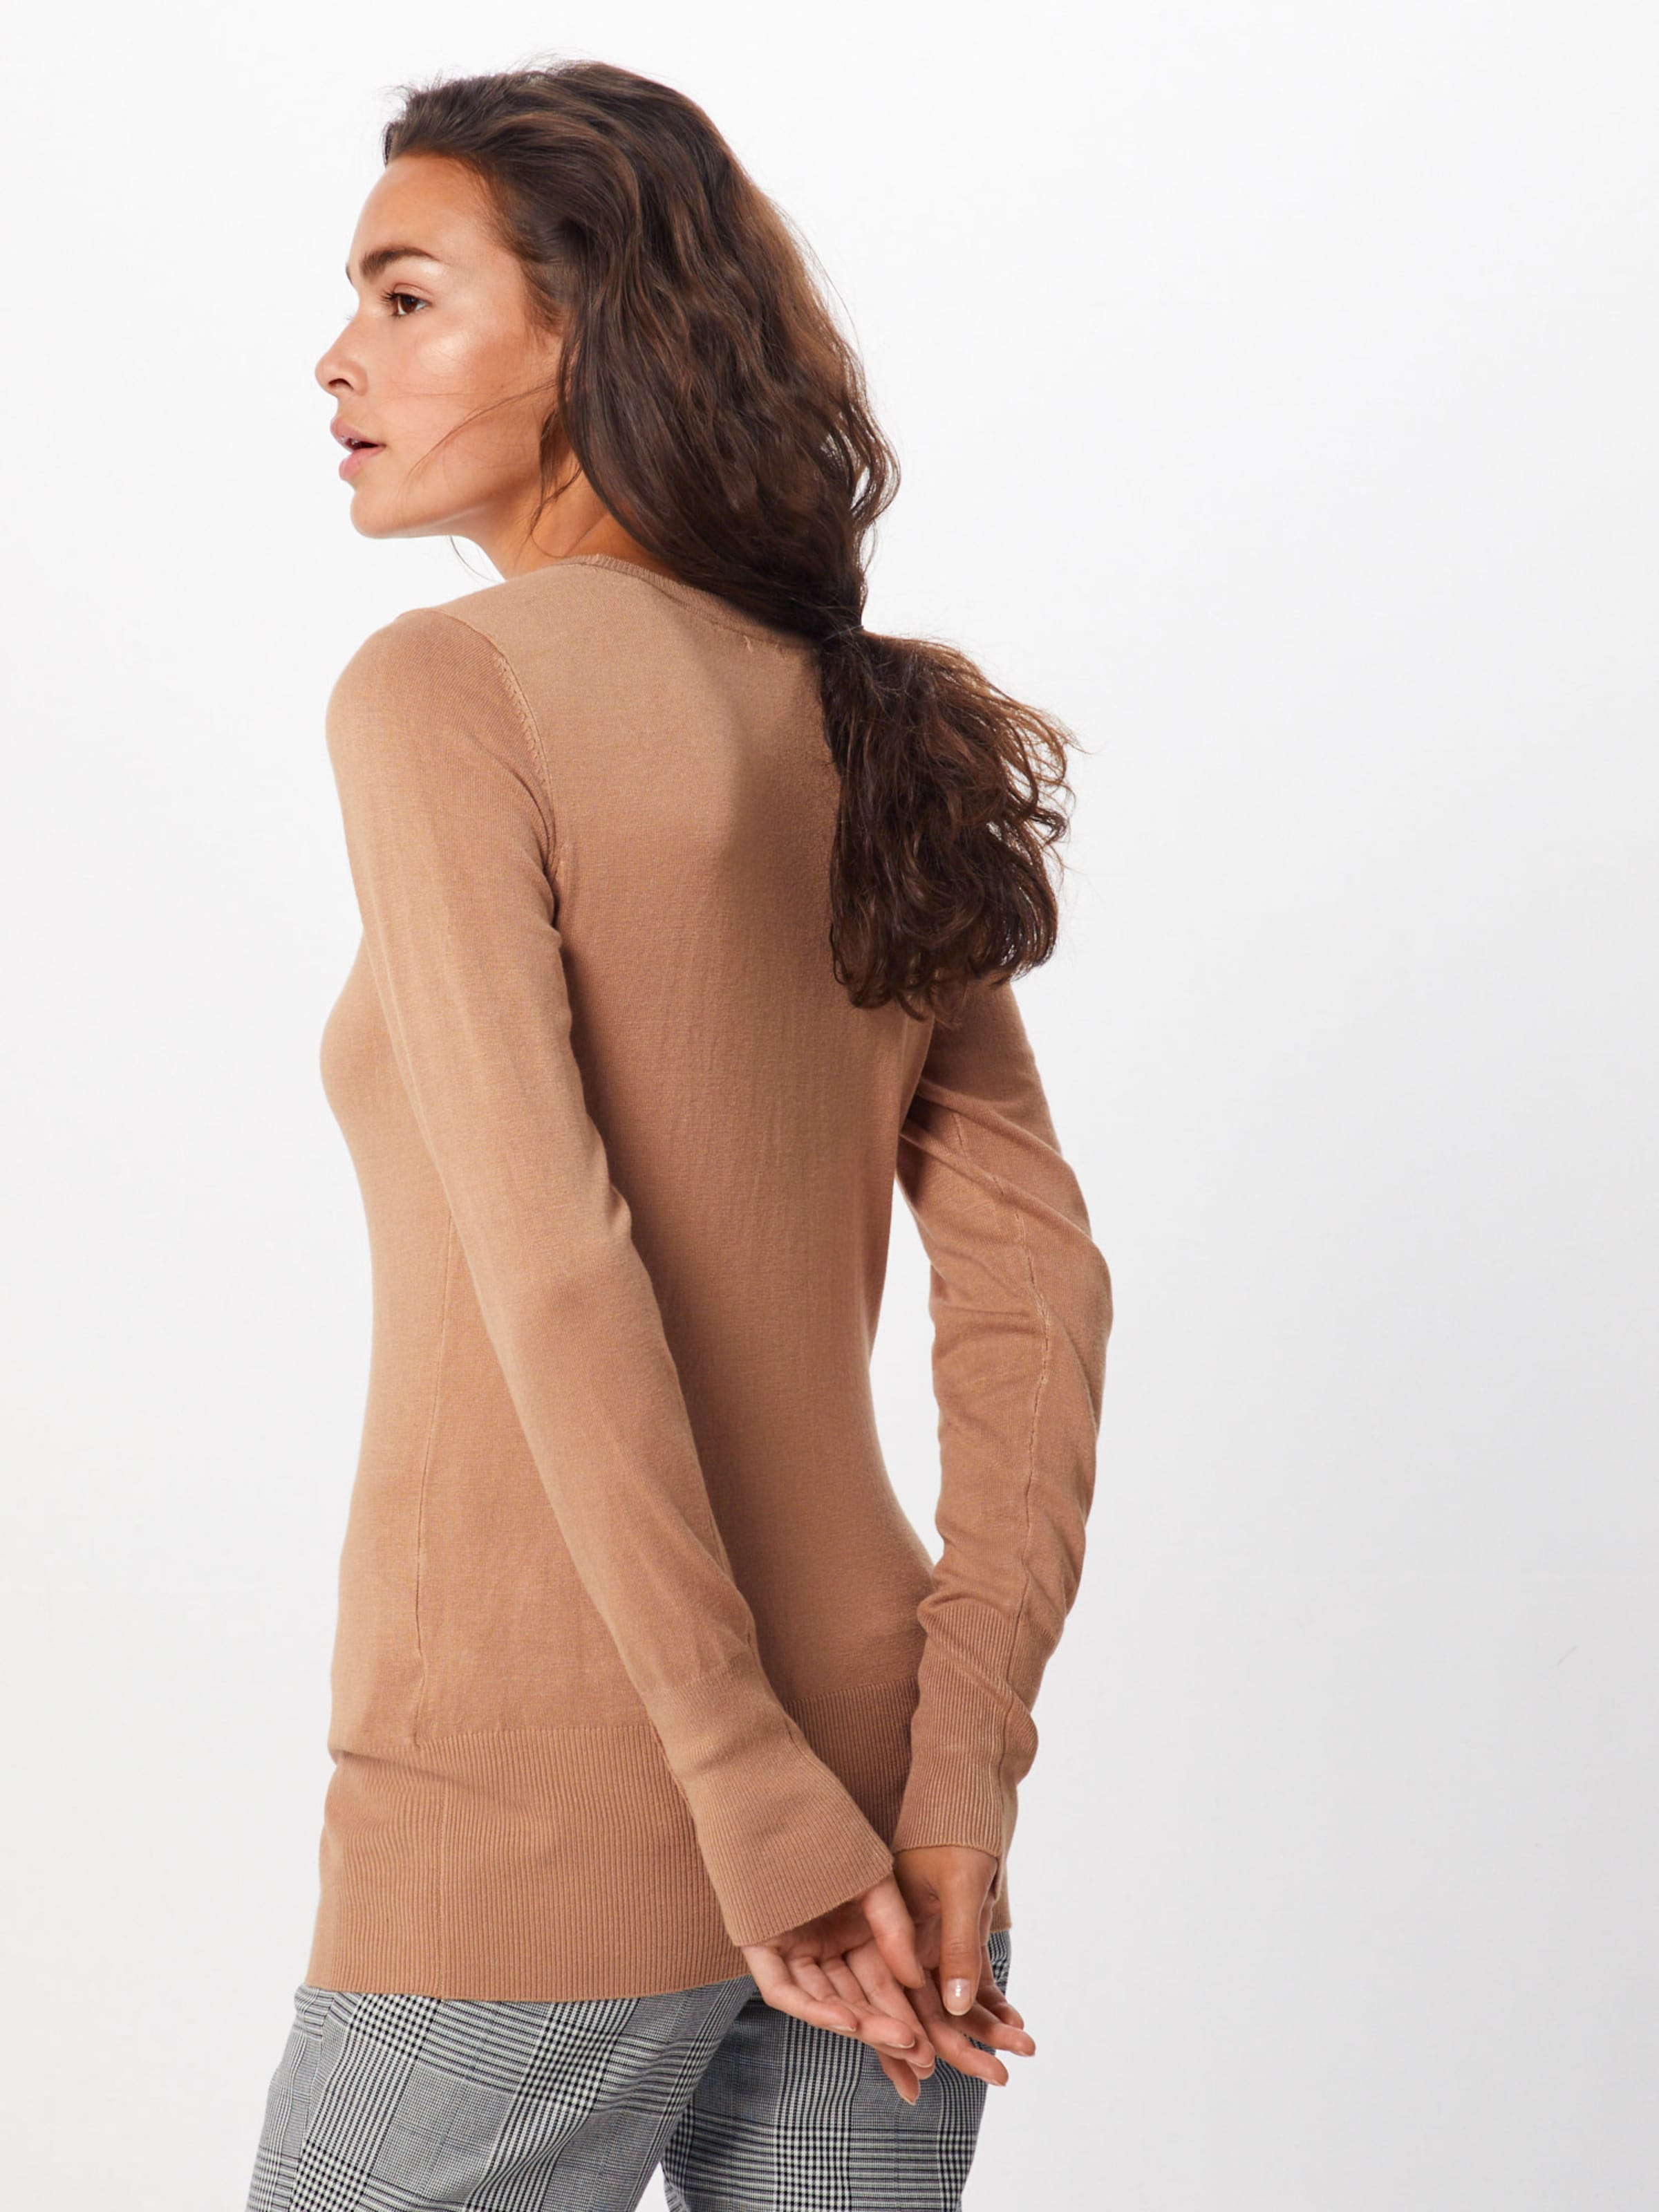 Guess Beige Beige Guess Guess In In Pullover In Guess Pullover Pullover Pullover Beige In rdsQxotBhC